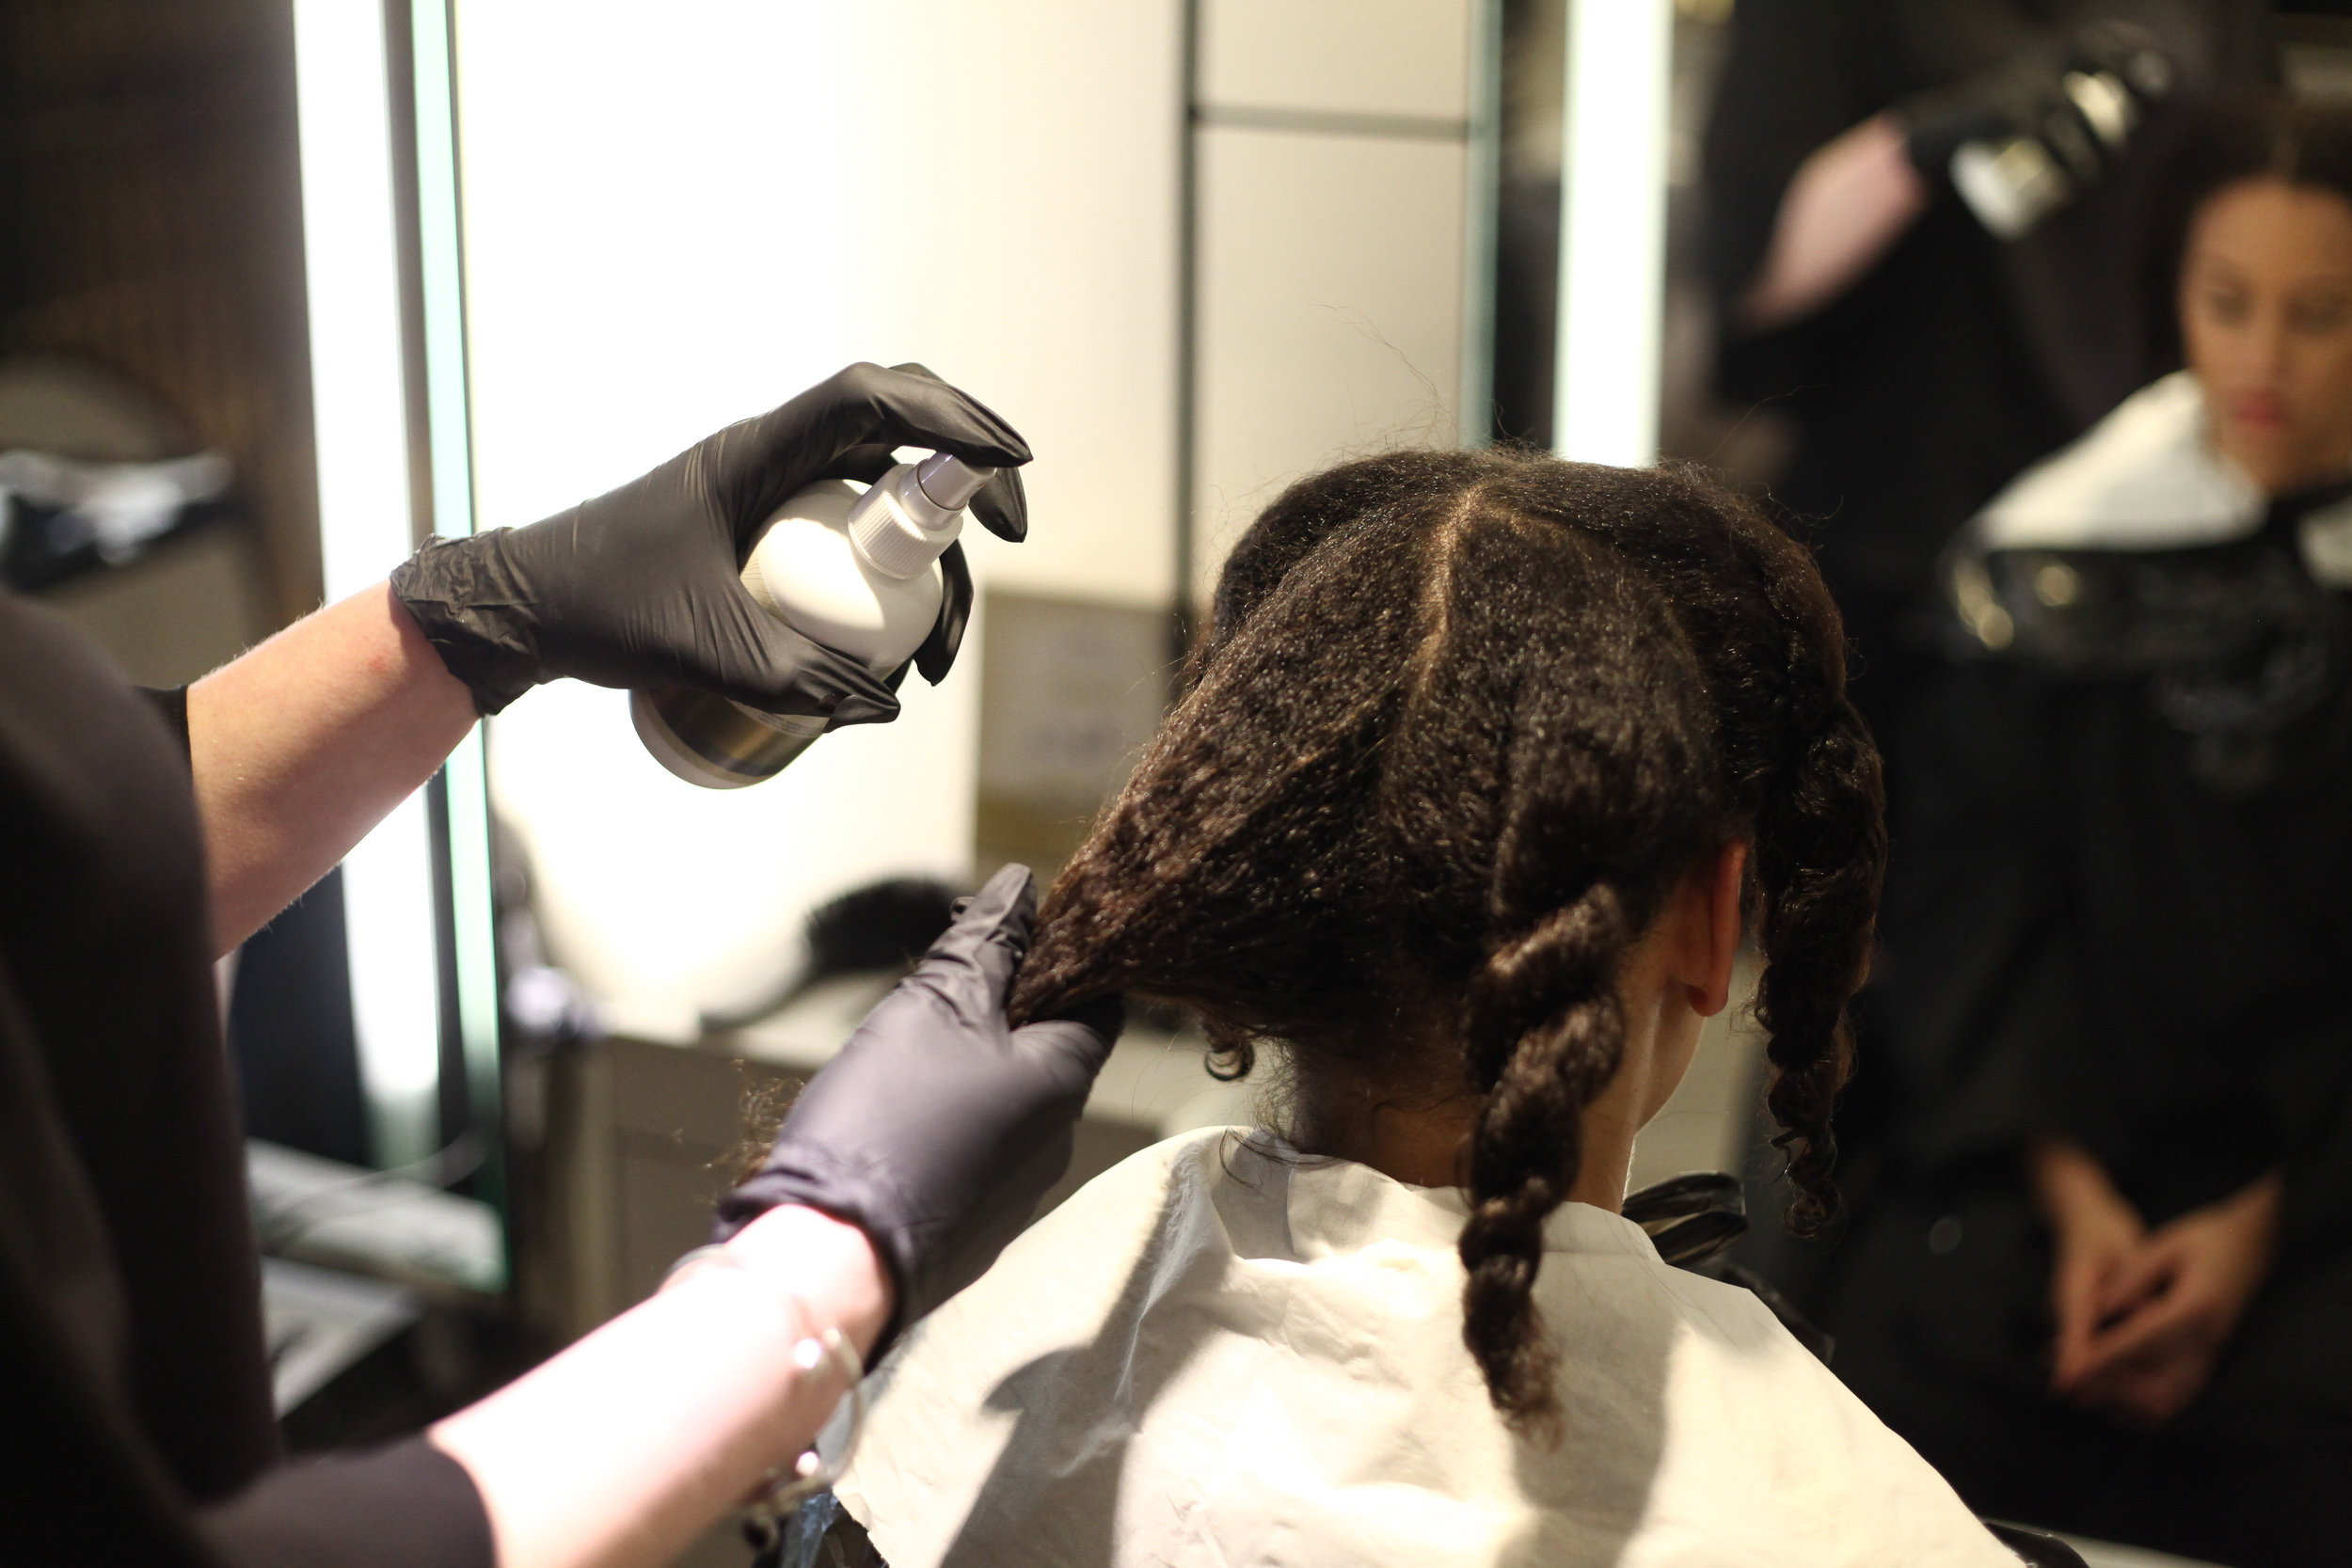 - Texture Release™ Releasing Lotion was thoroughly applied in small equal sections